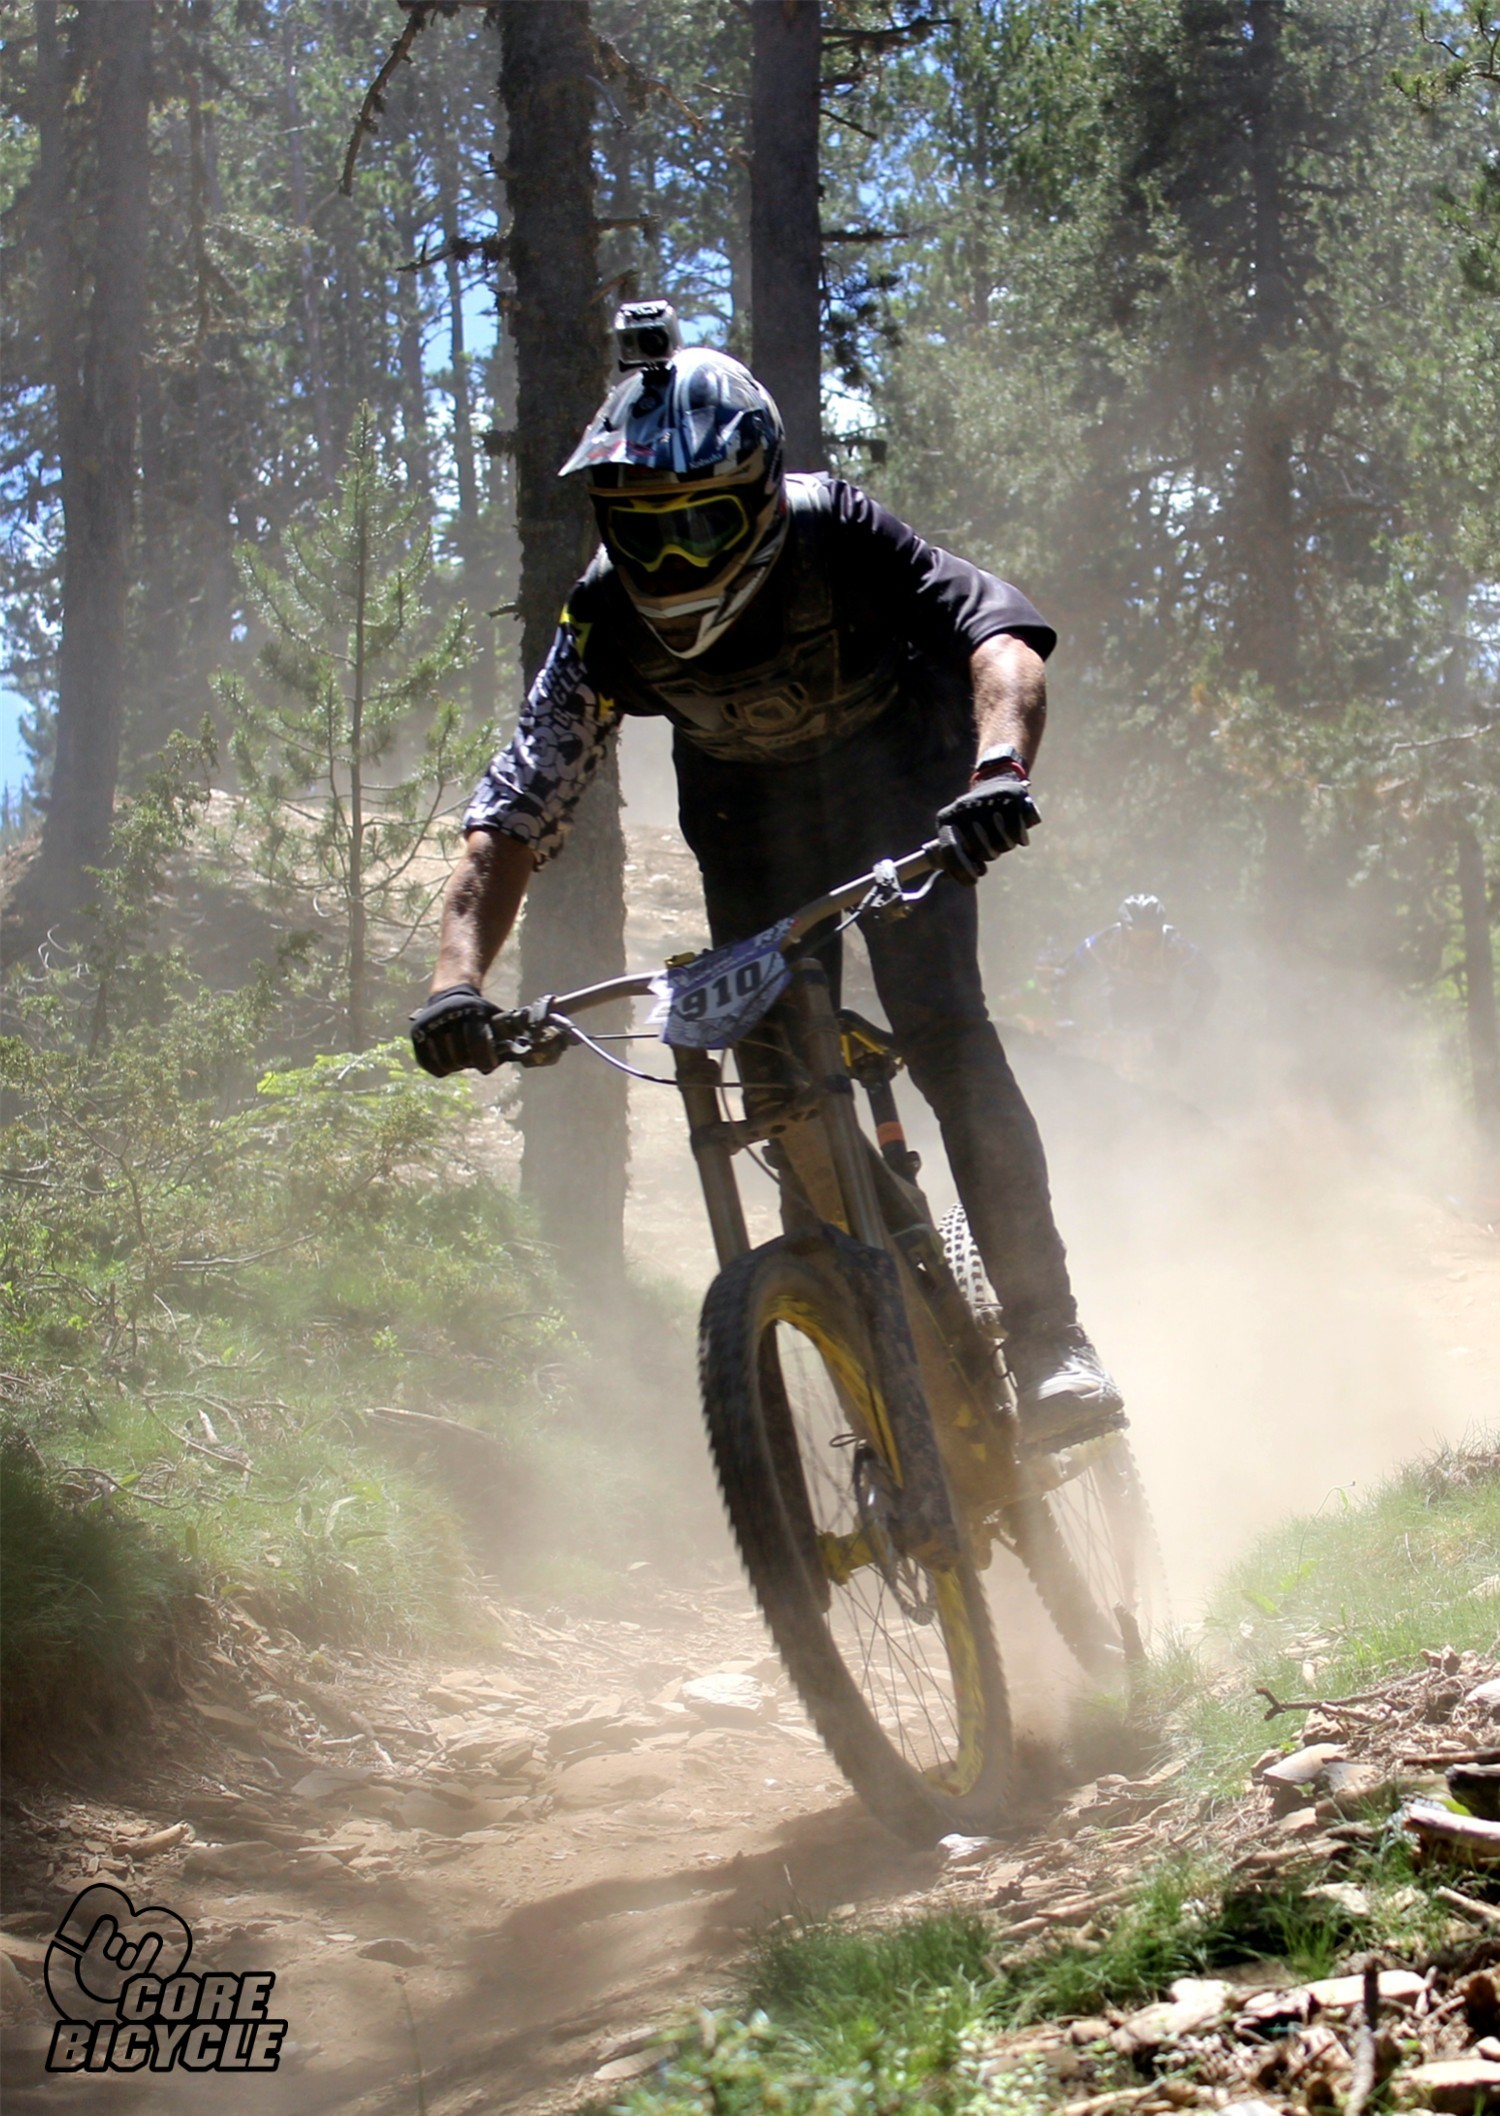 Vallnord BikePark Downhill - enduro bicycle bike park